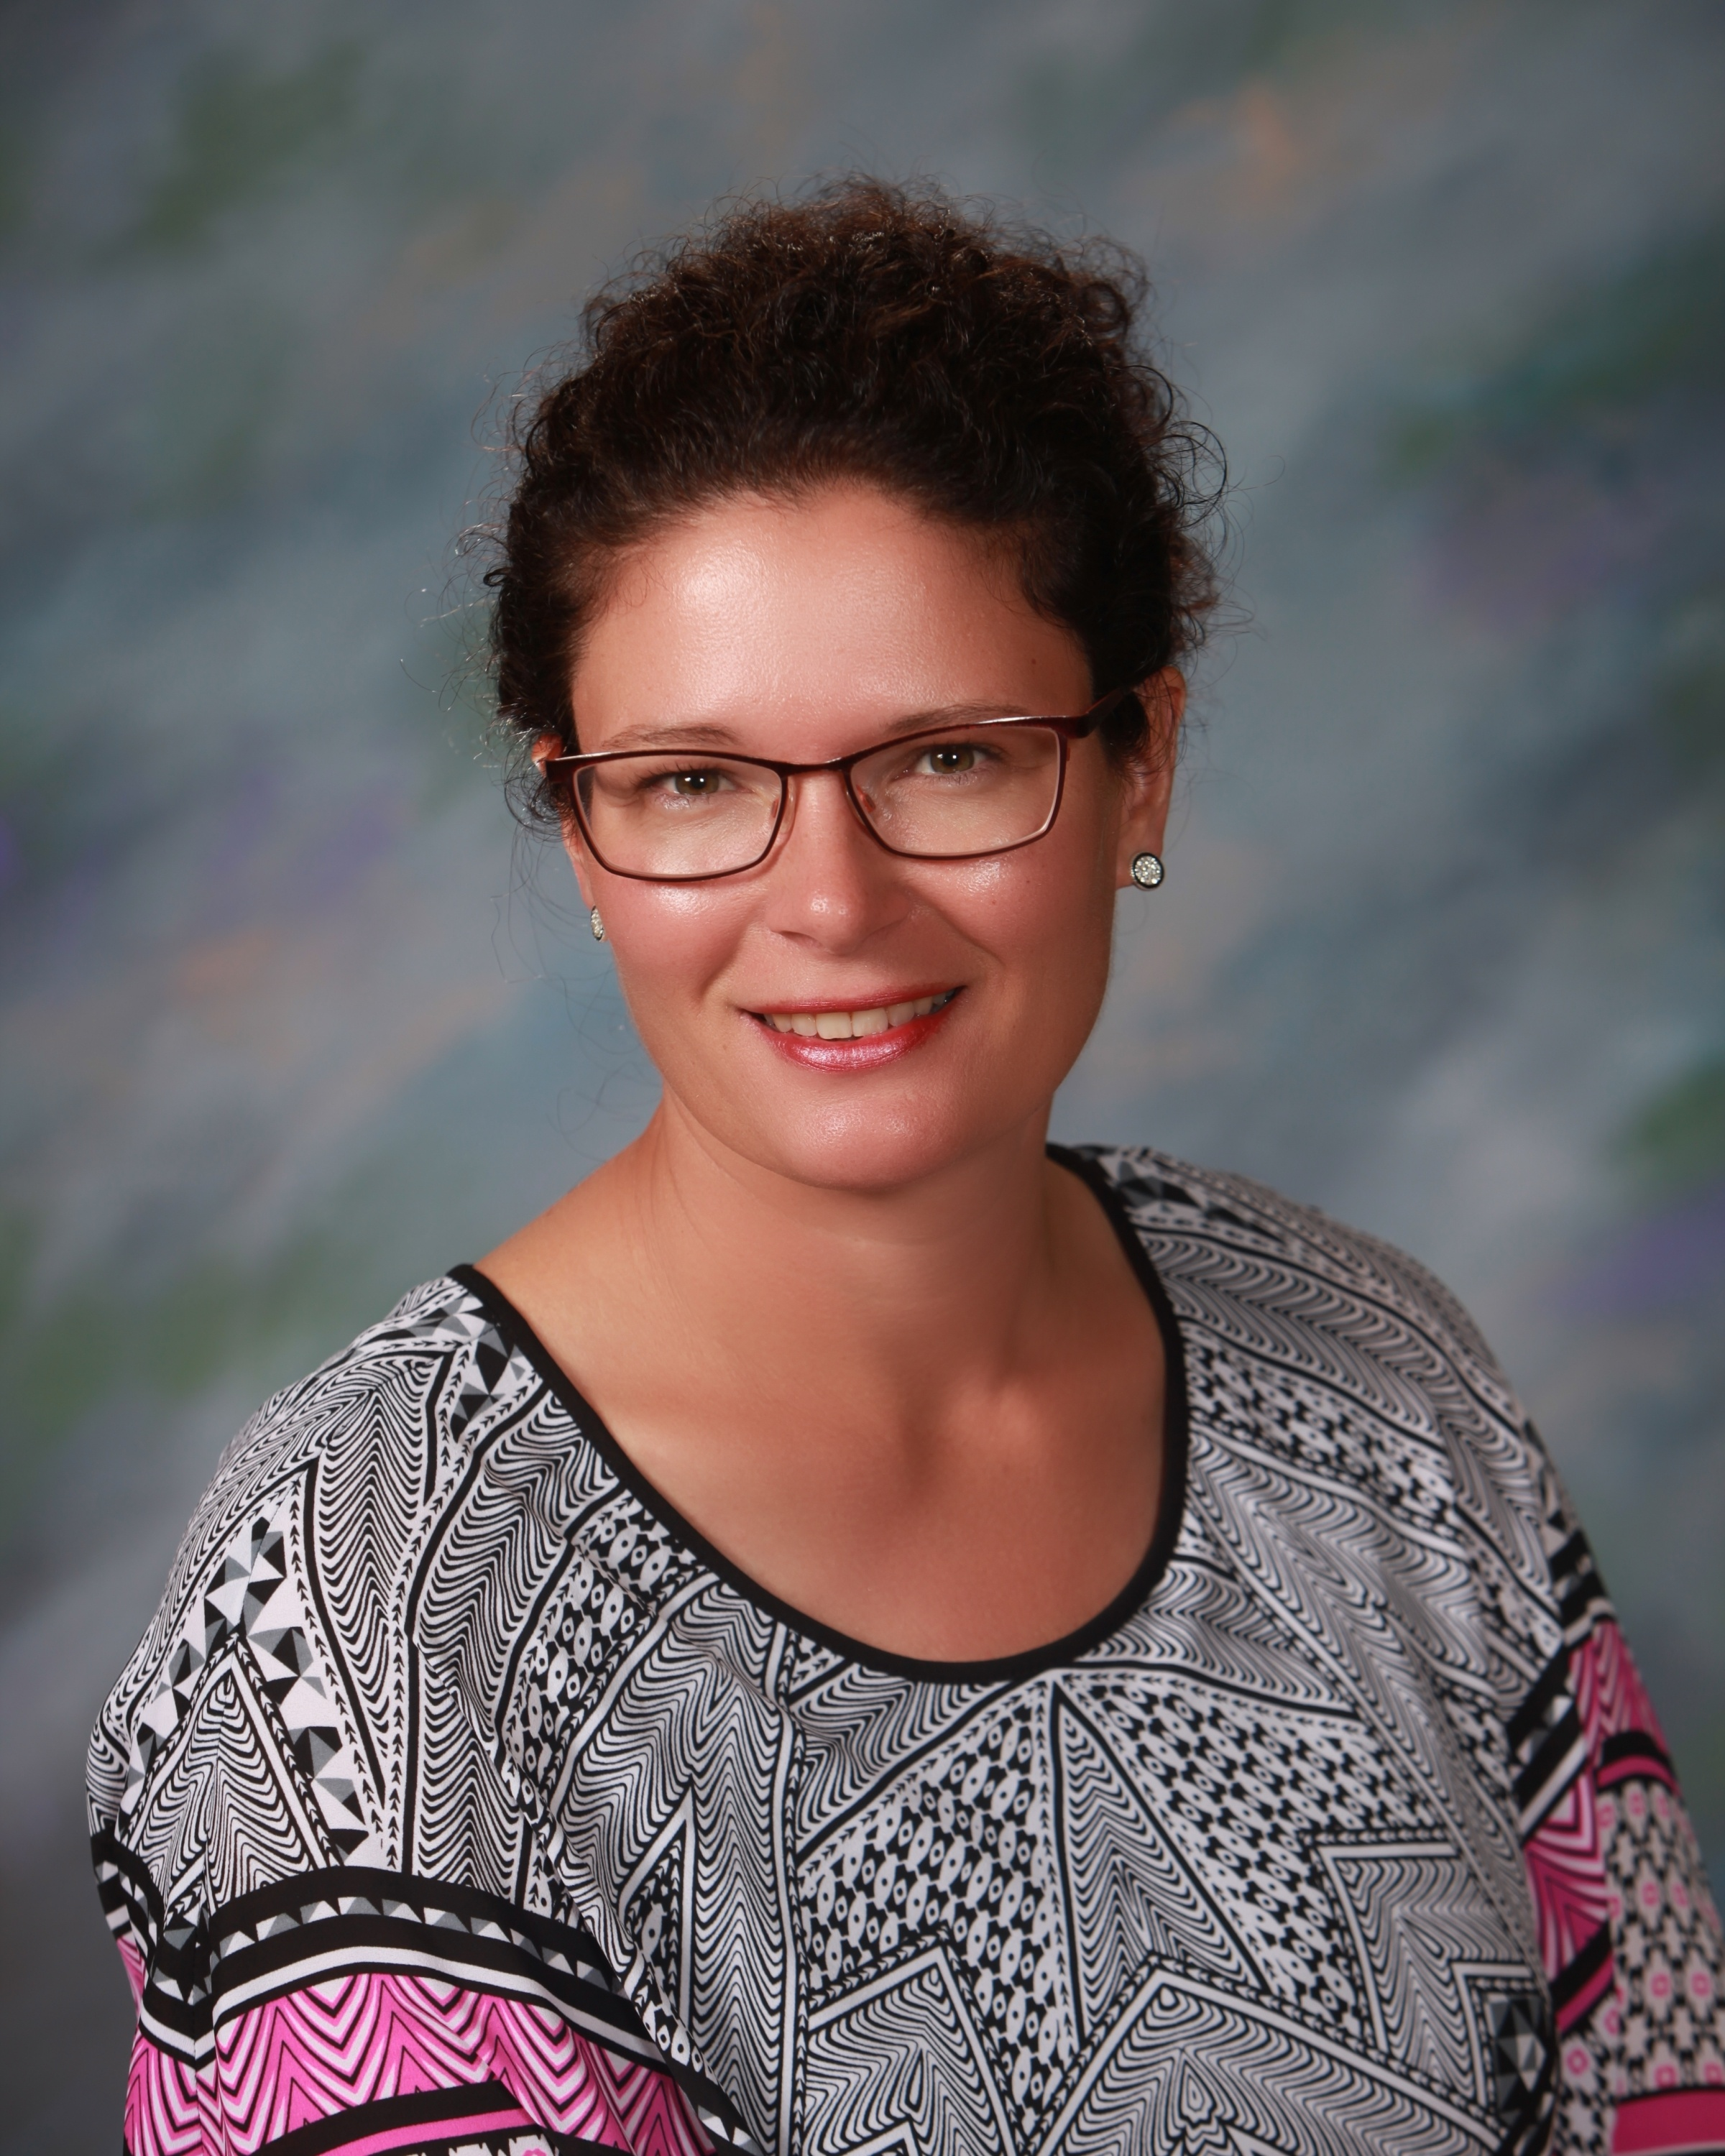 teacher hrsb shannon patterson education advisory board halifax learning spellread spell read write learn tutor tutoring